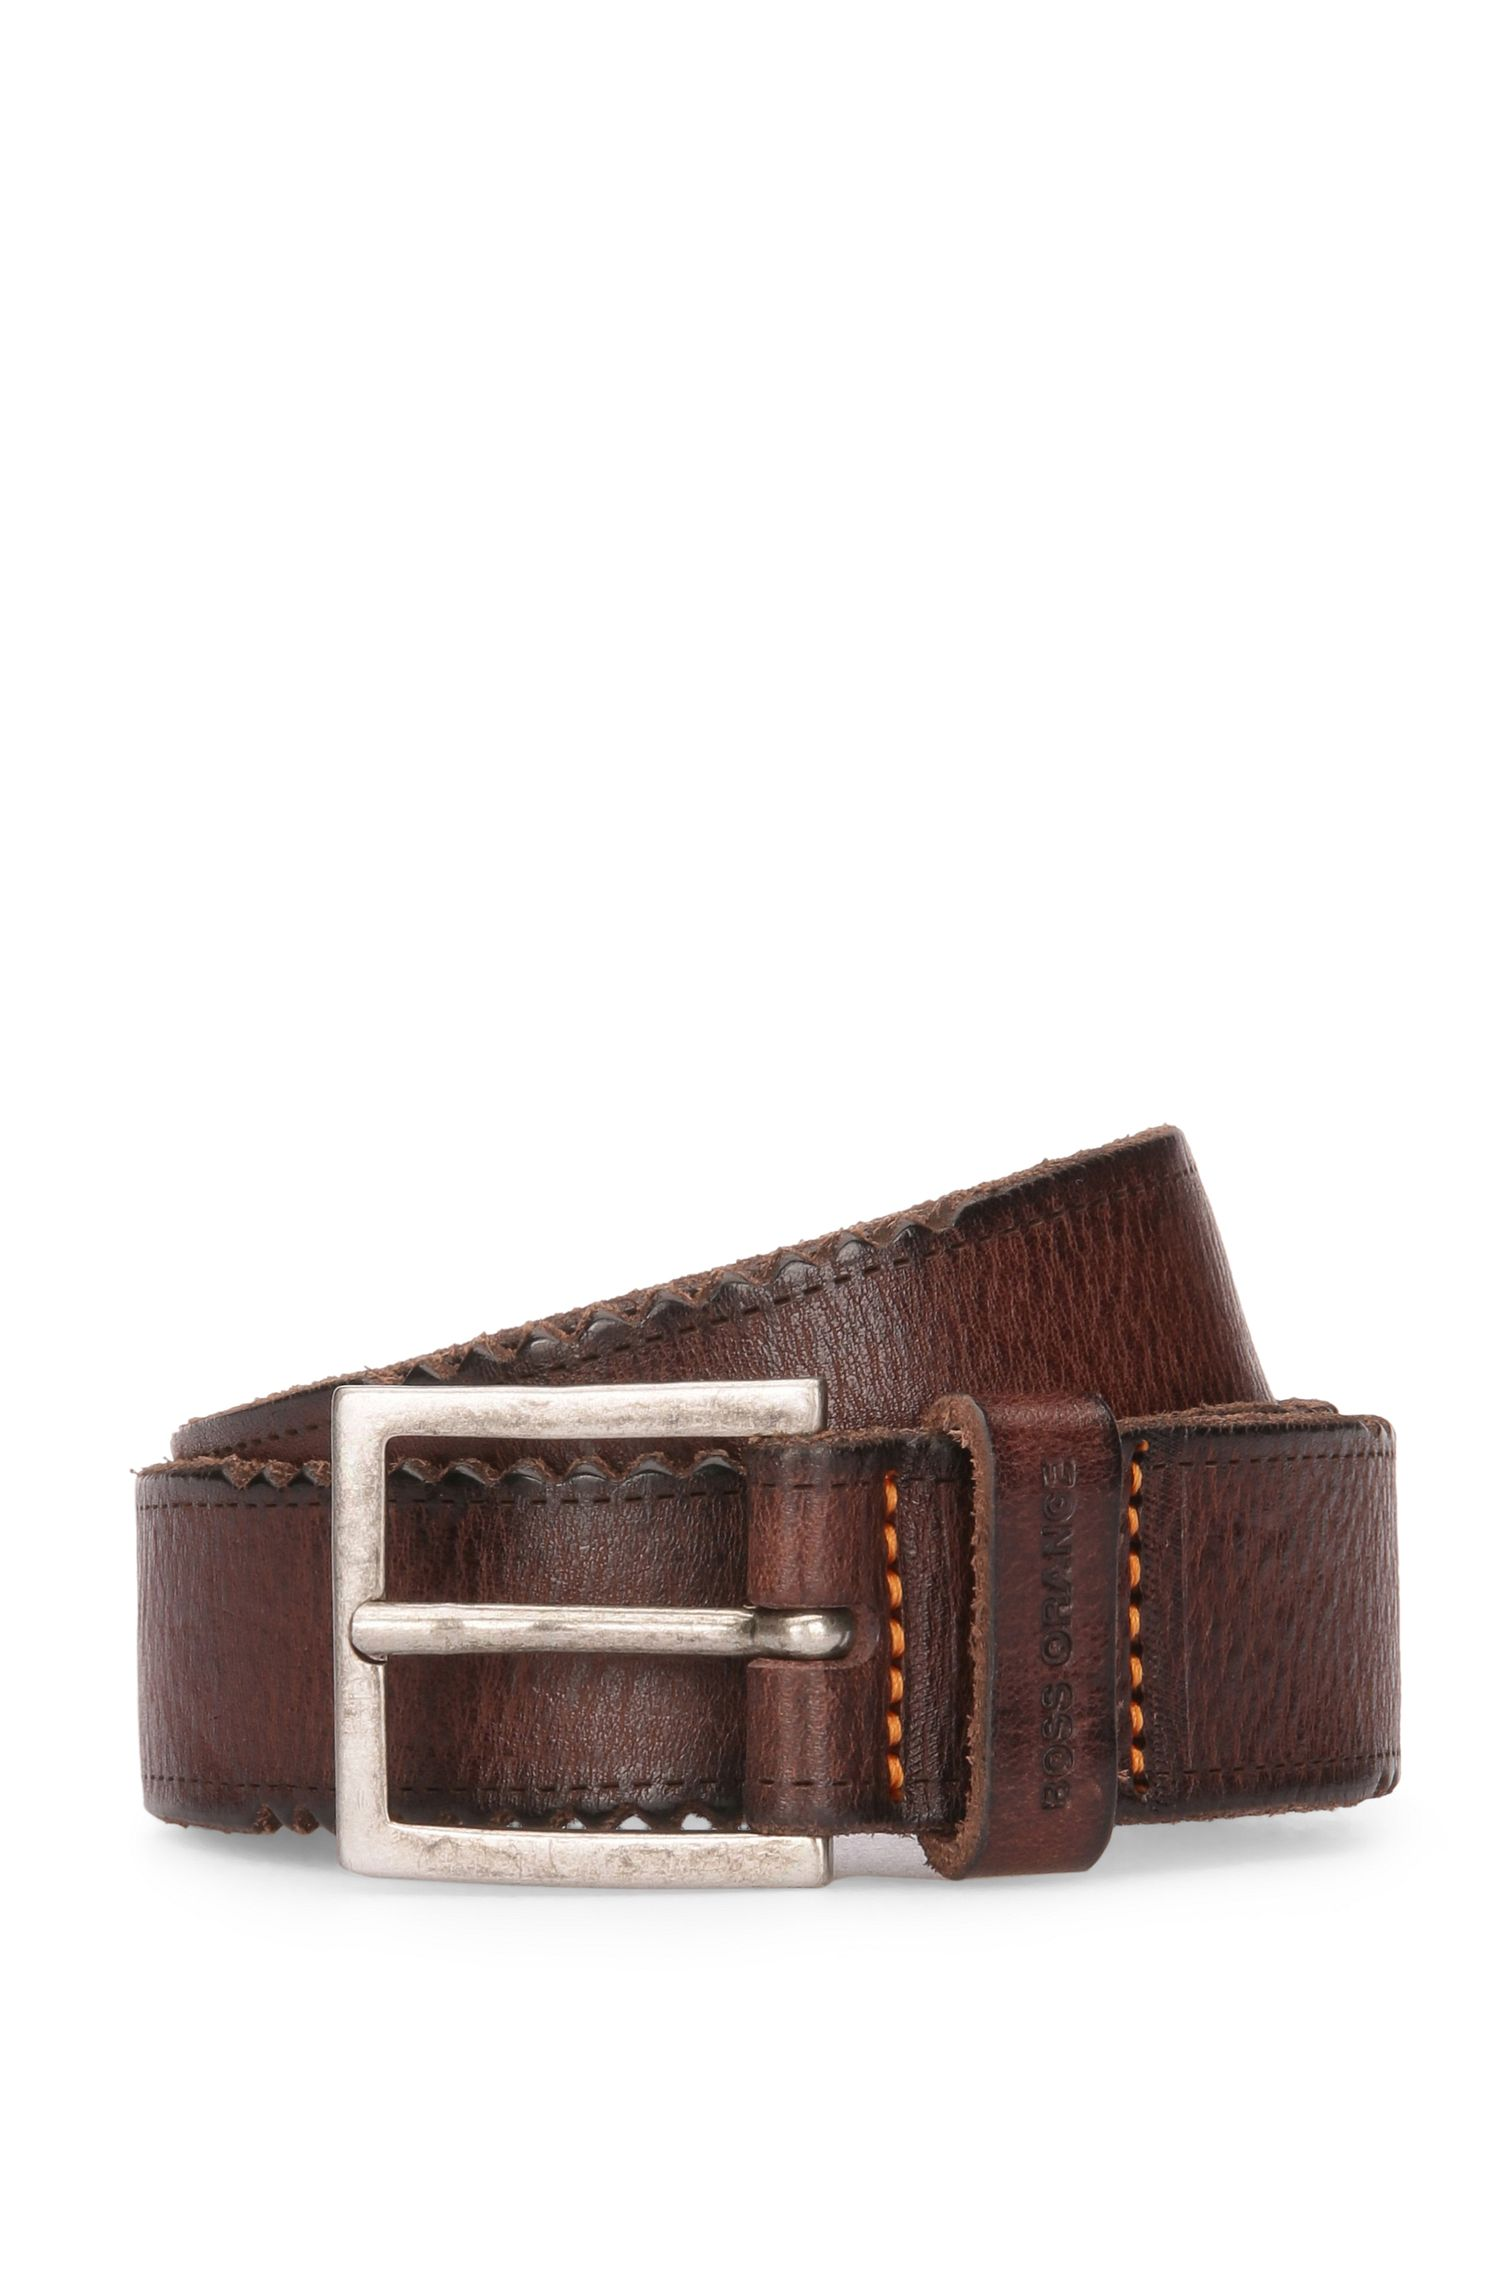 Leather belt with distressed edges